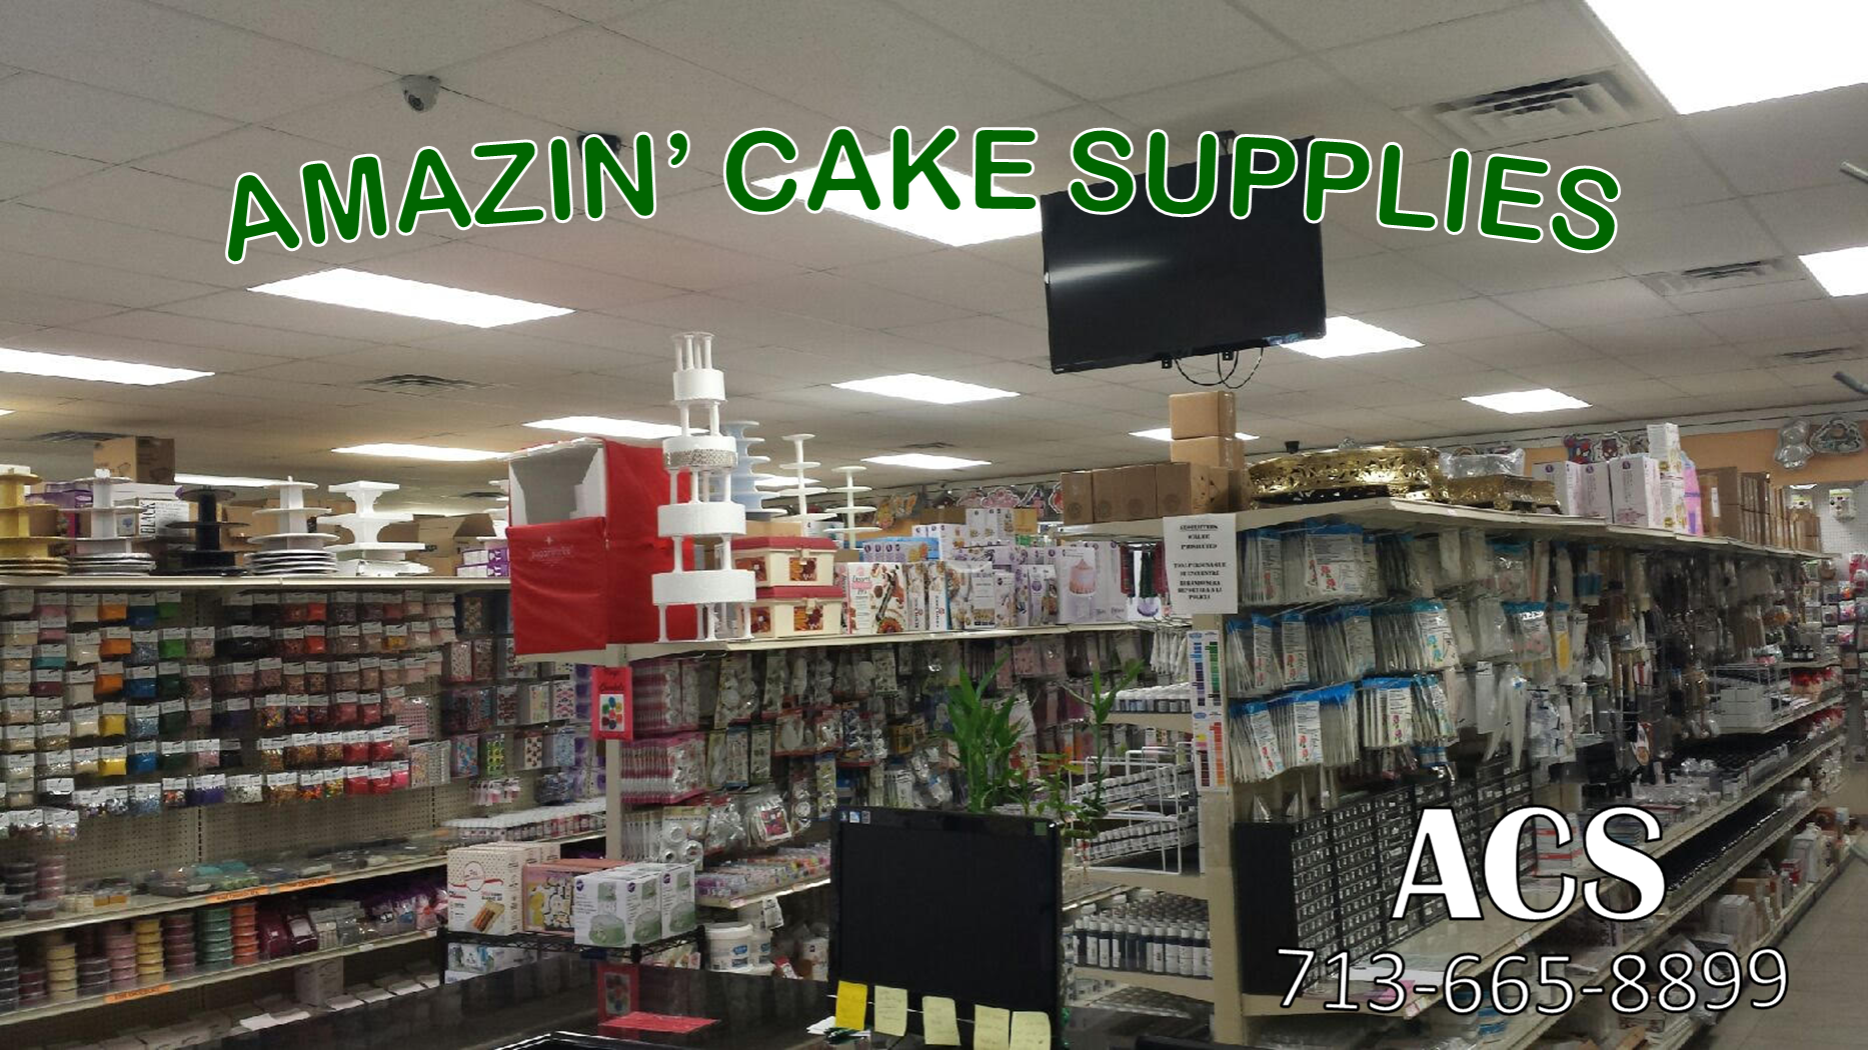 Cake Decorating Classes Near Rockwall Tx : Amazing Cake Supplies